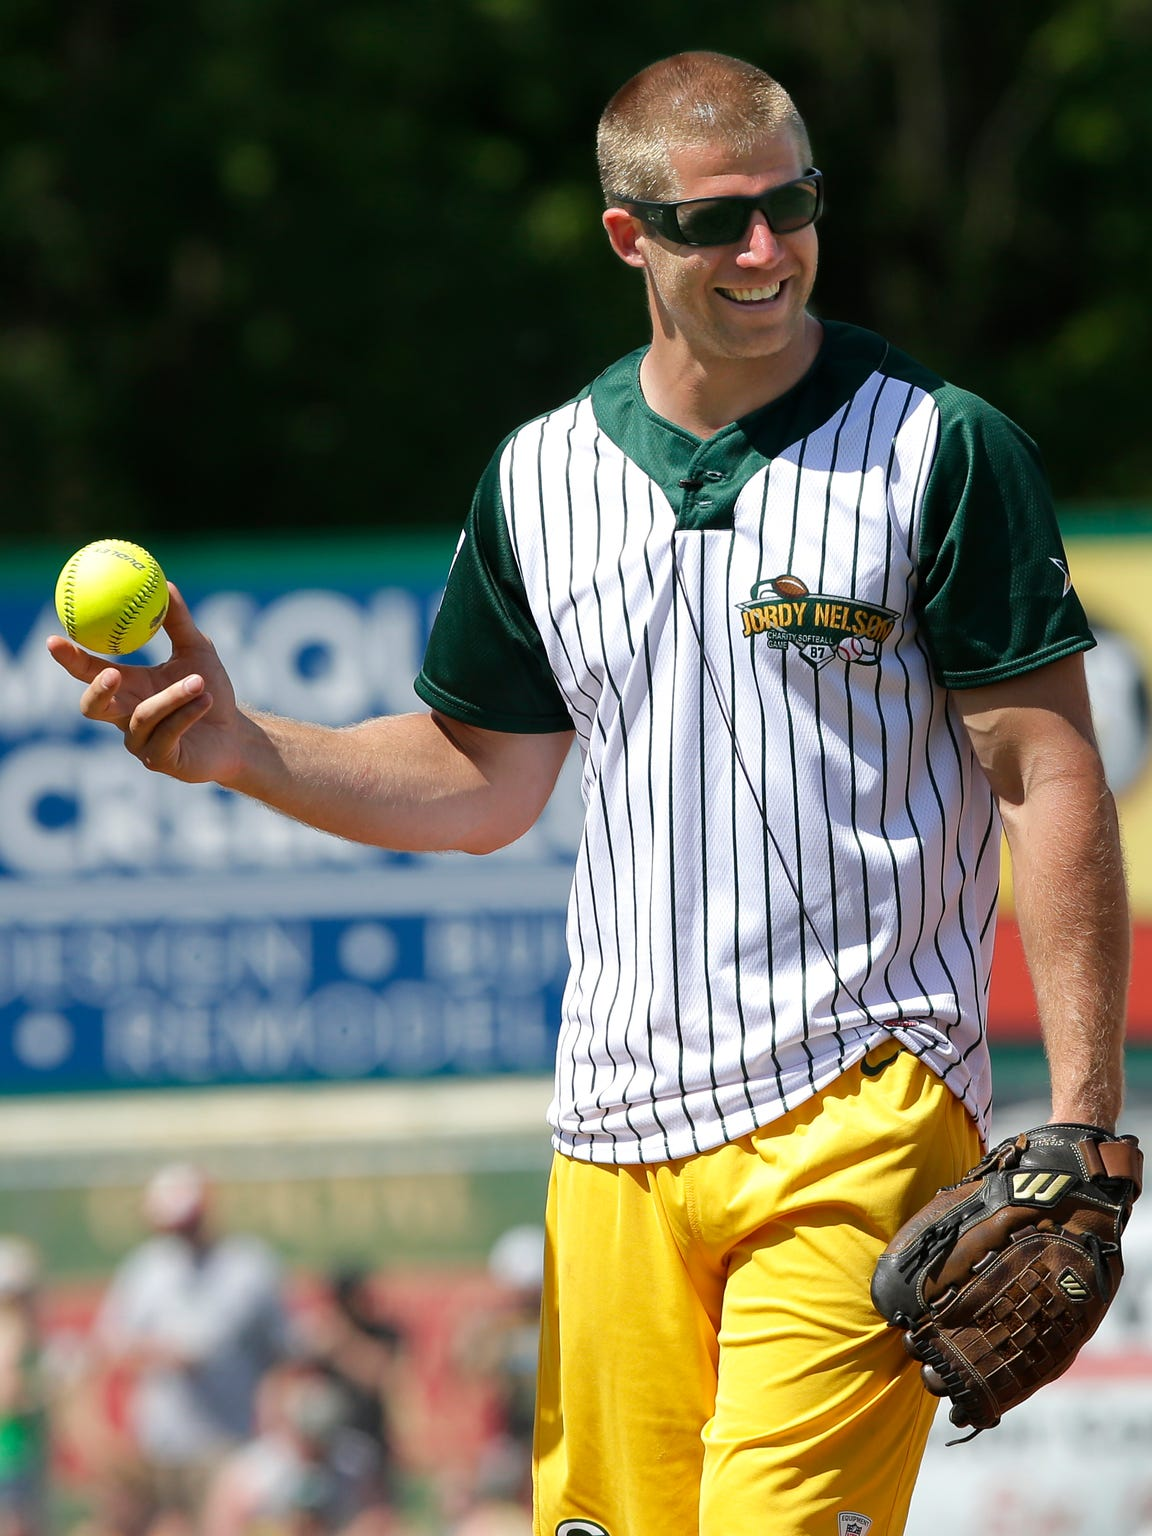 The Jordy Nelson Charity Softball Game will pack Fox